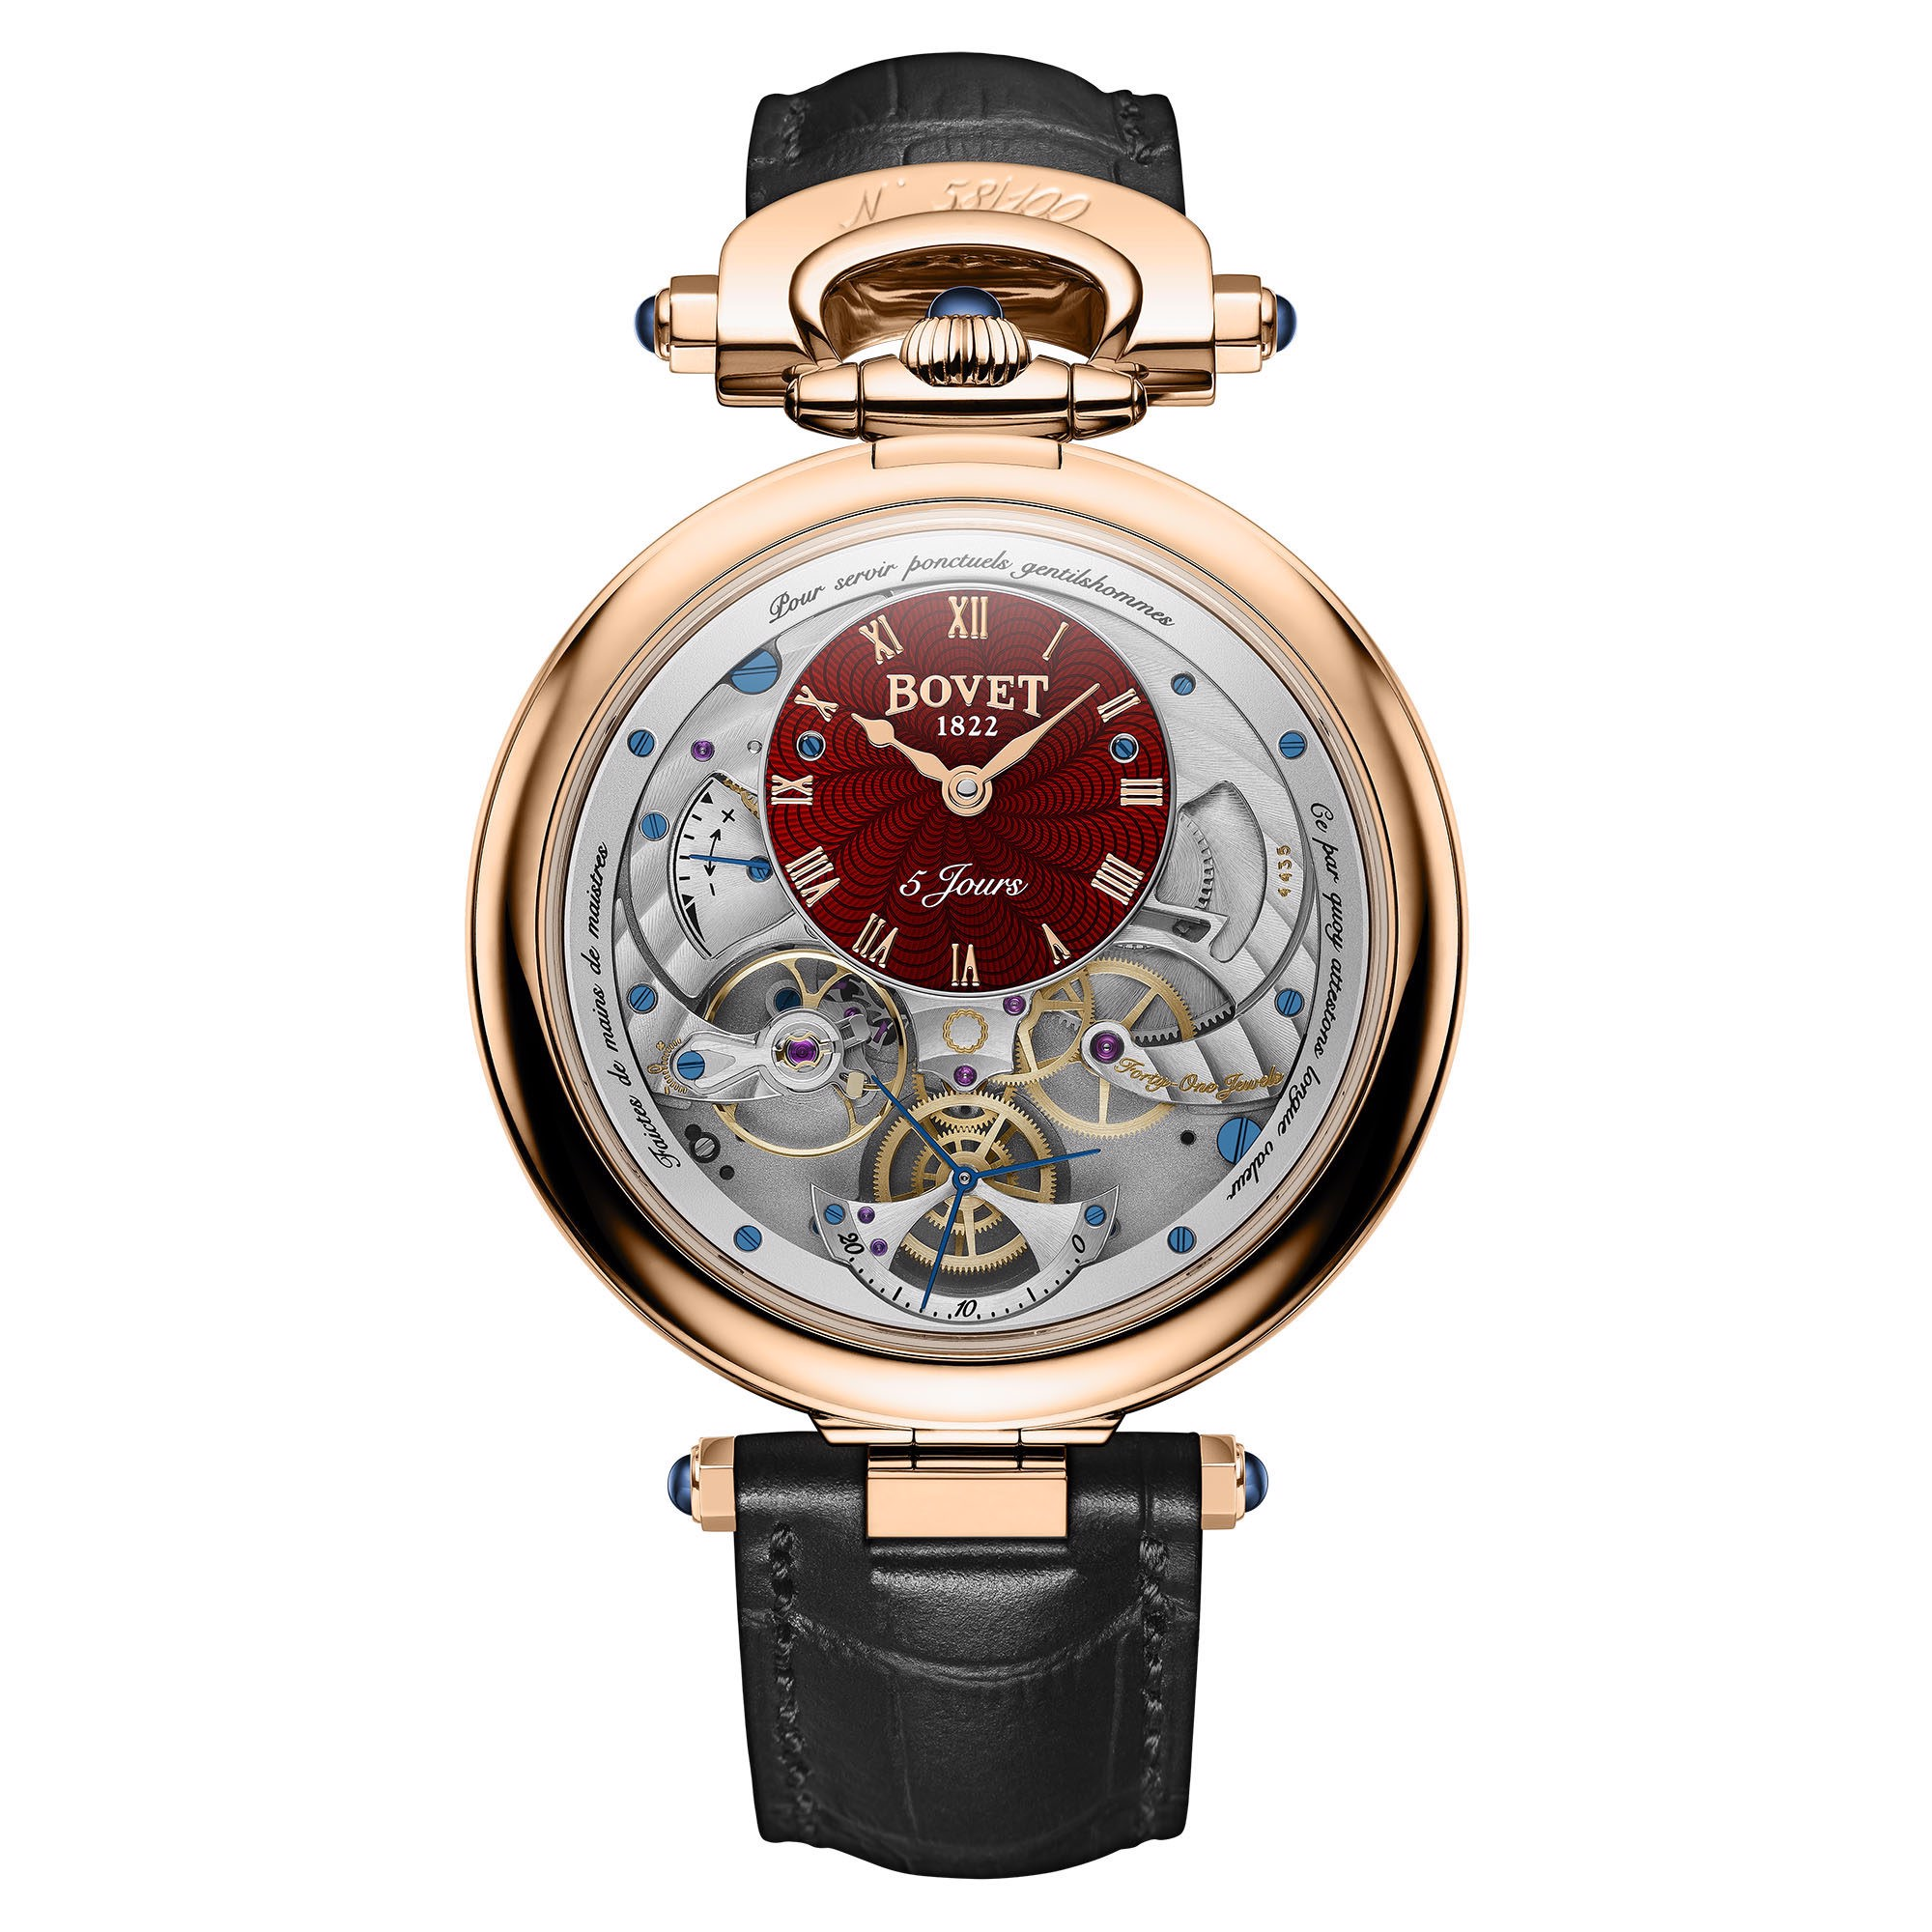 Bovet Fleurier Complications Virtuoso V Rose Gold Red guilloché Dial